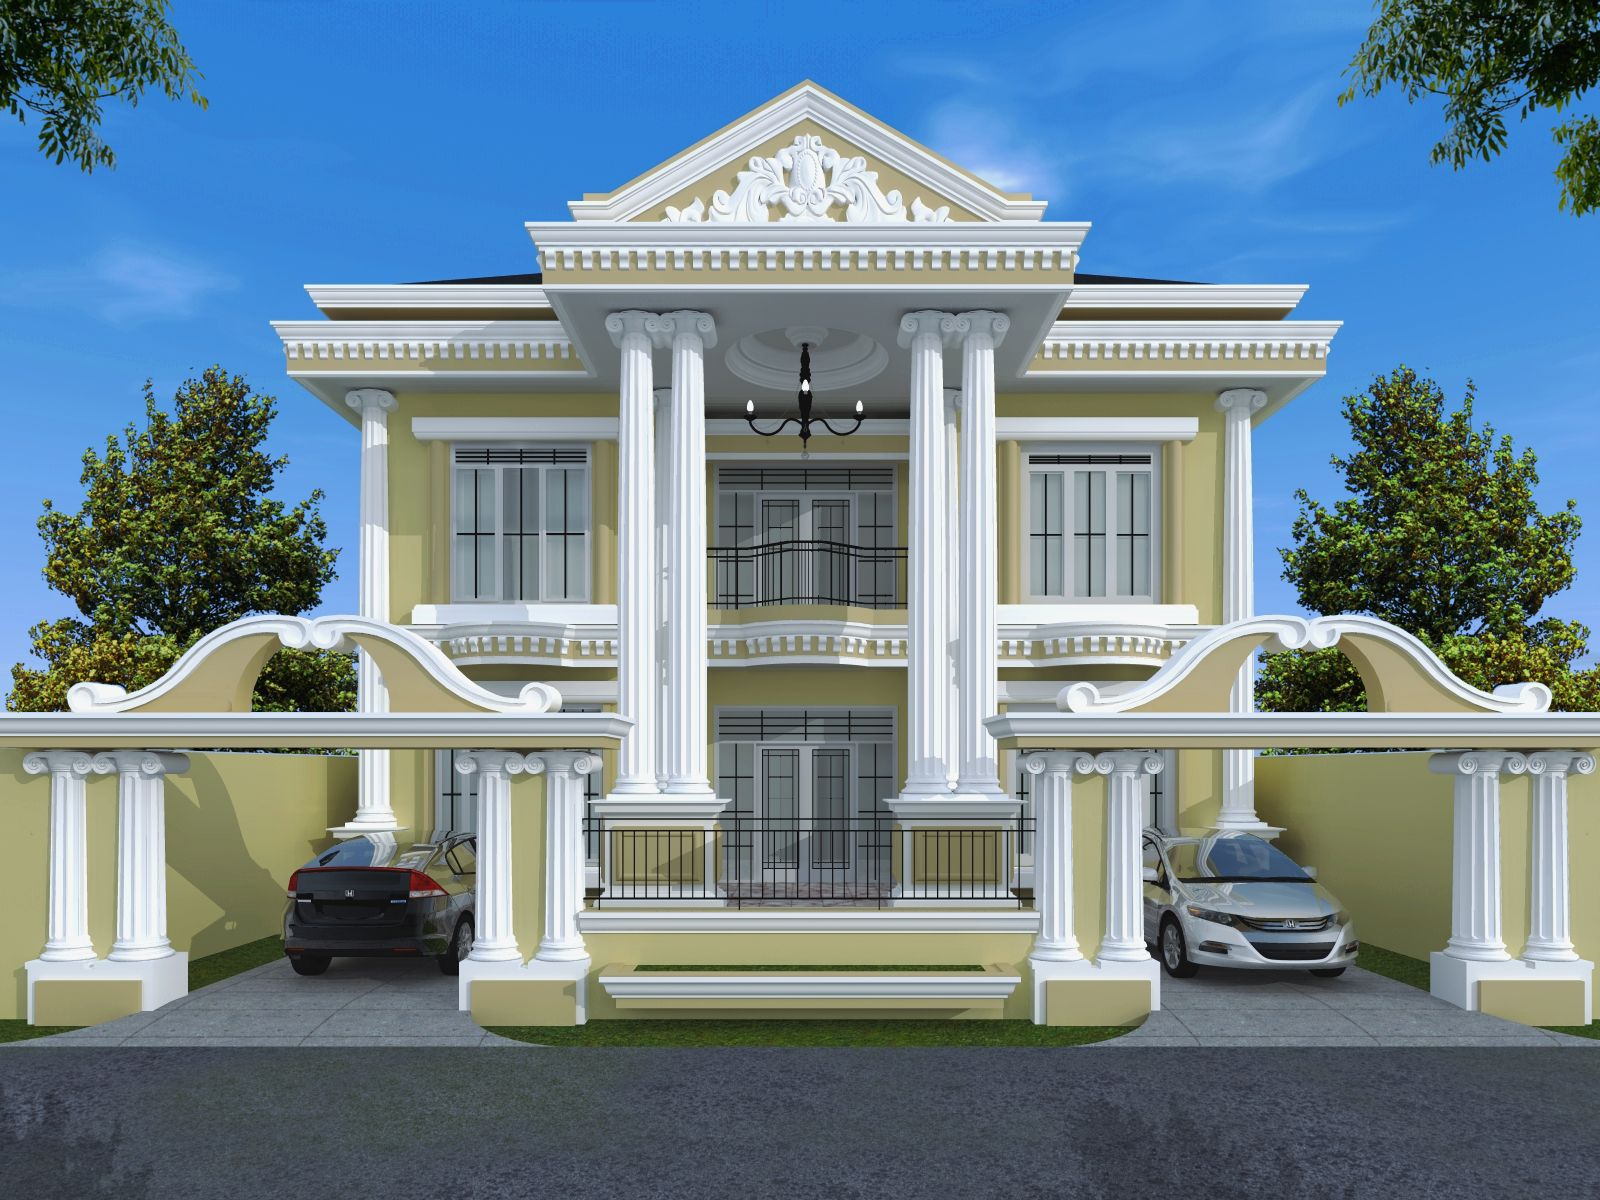 Design Rumah Classic House Styles House Plans Mansion House Arch Design